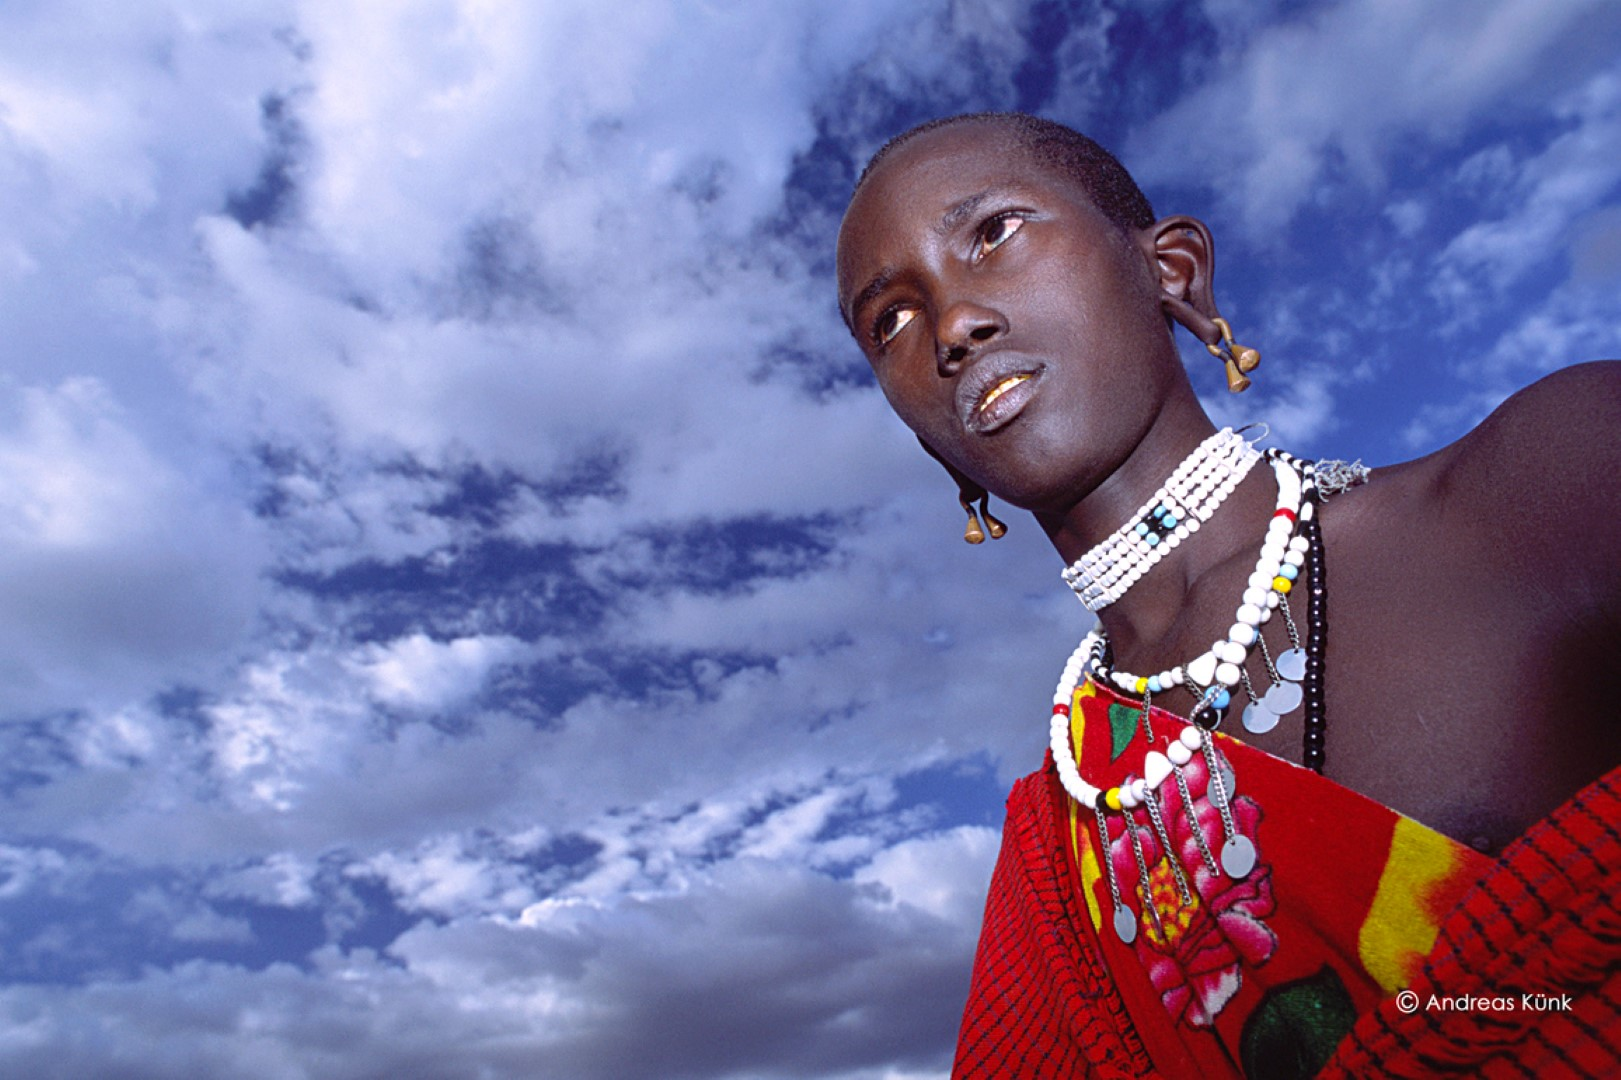 A close up of a traditional dressed Maasai person